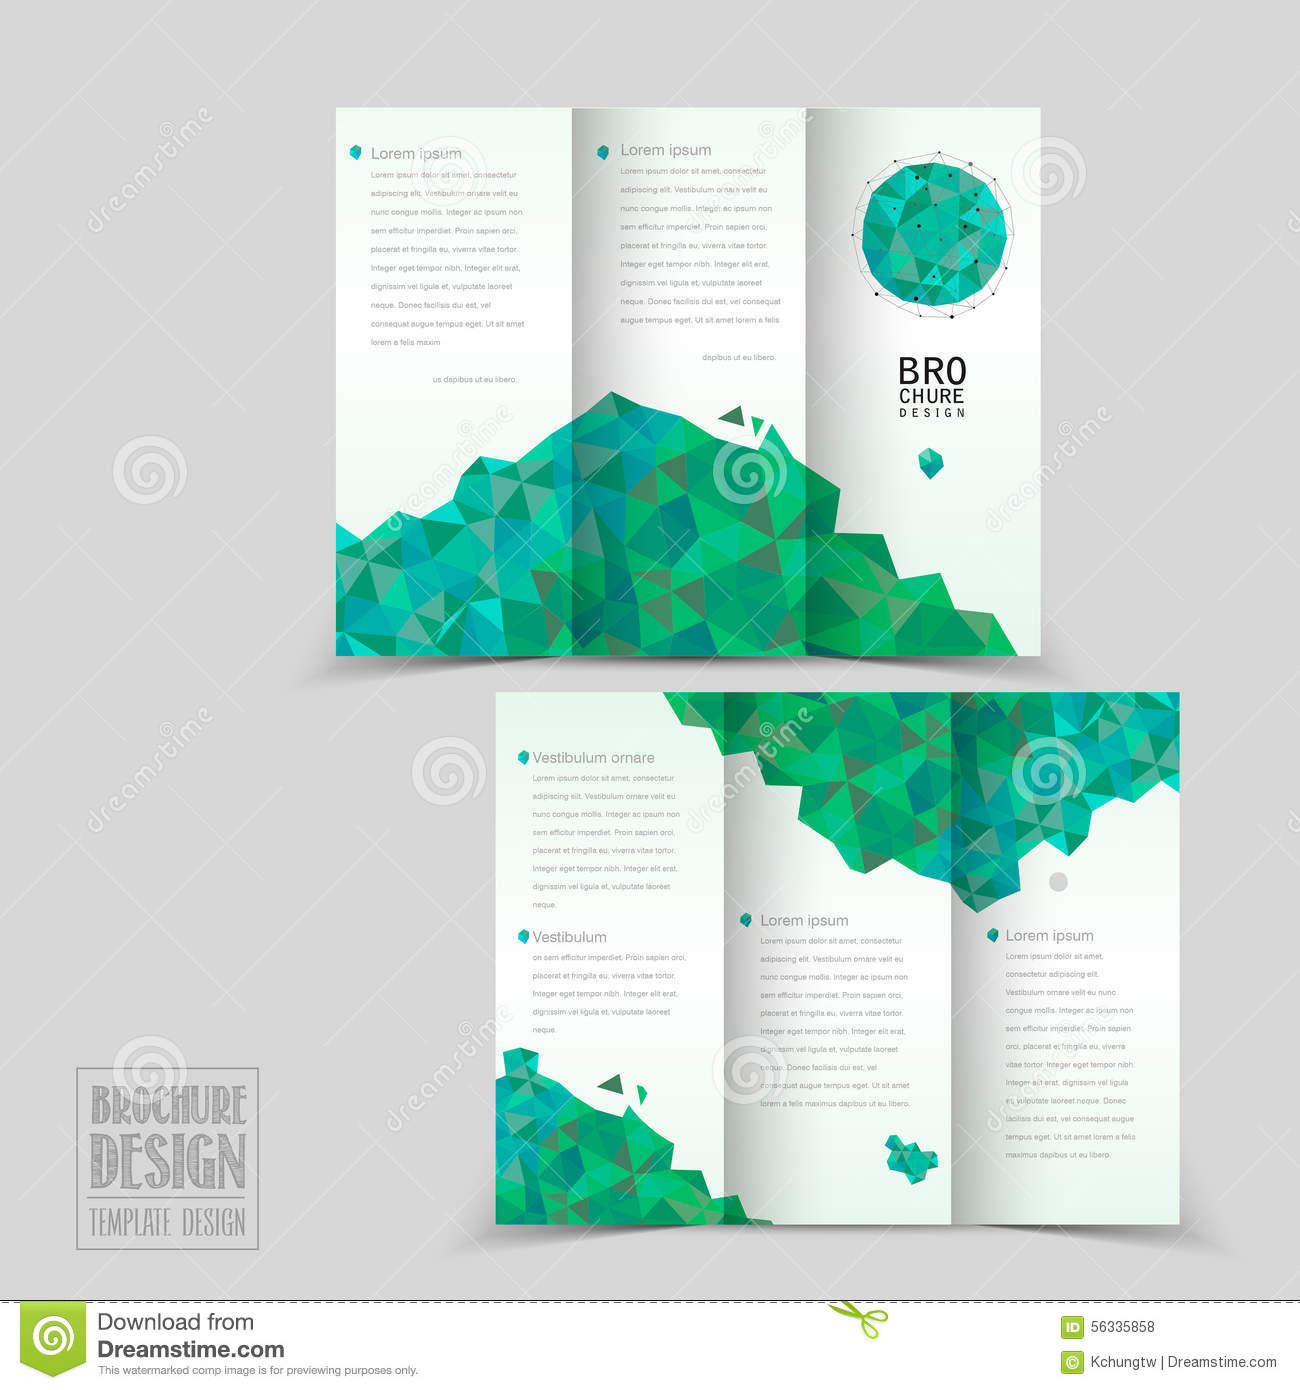 Simplicity tri fold brochure template design stock vector for Brochures design templates